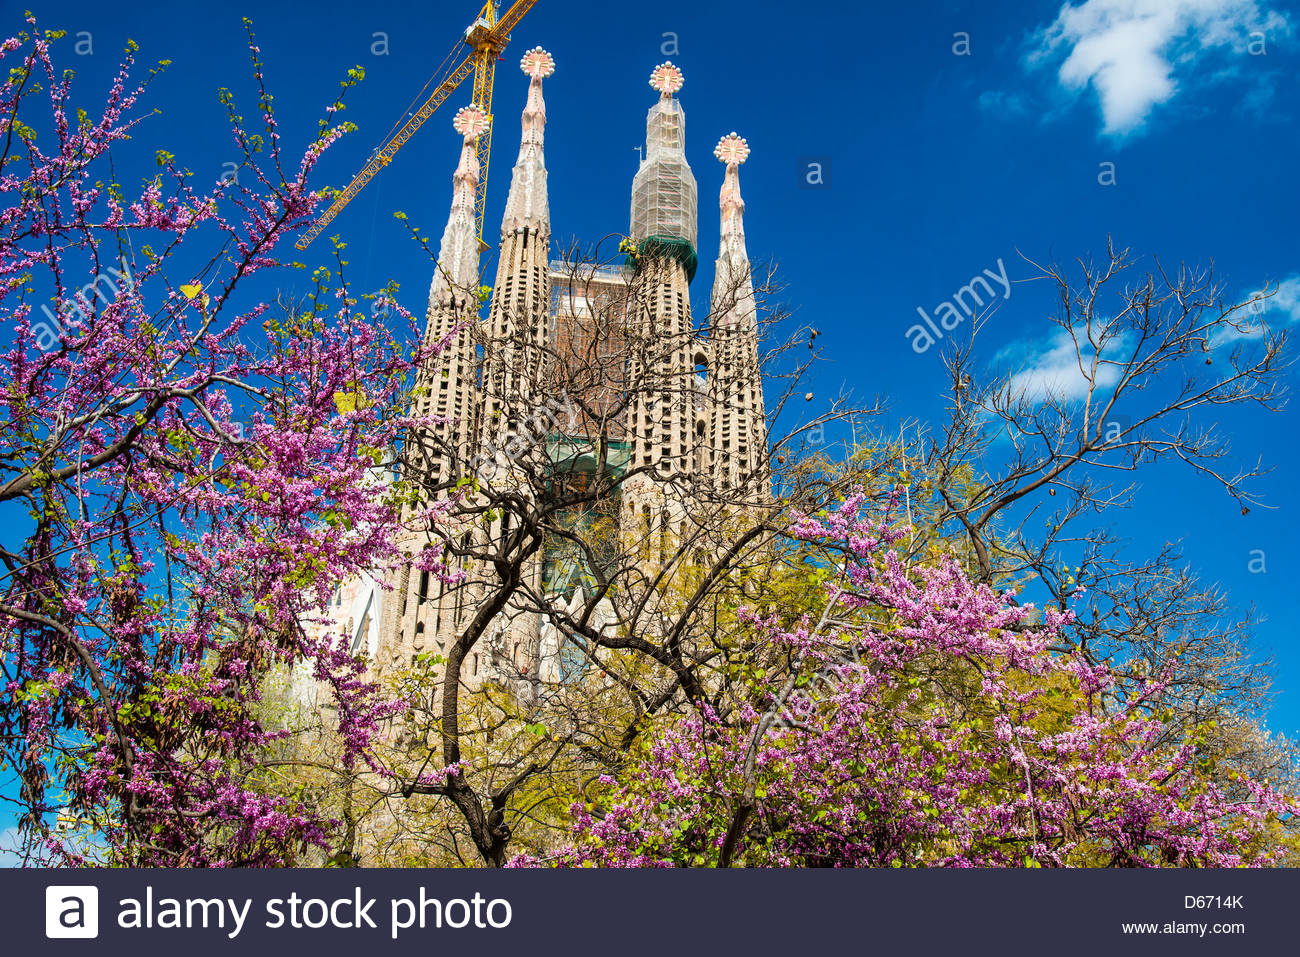 Sagrada Familia, Passion Façade (Western side) with blooming trees, Barcelona, Catalonia, Spain - Stock Image